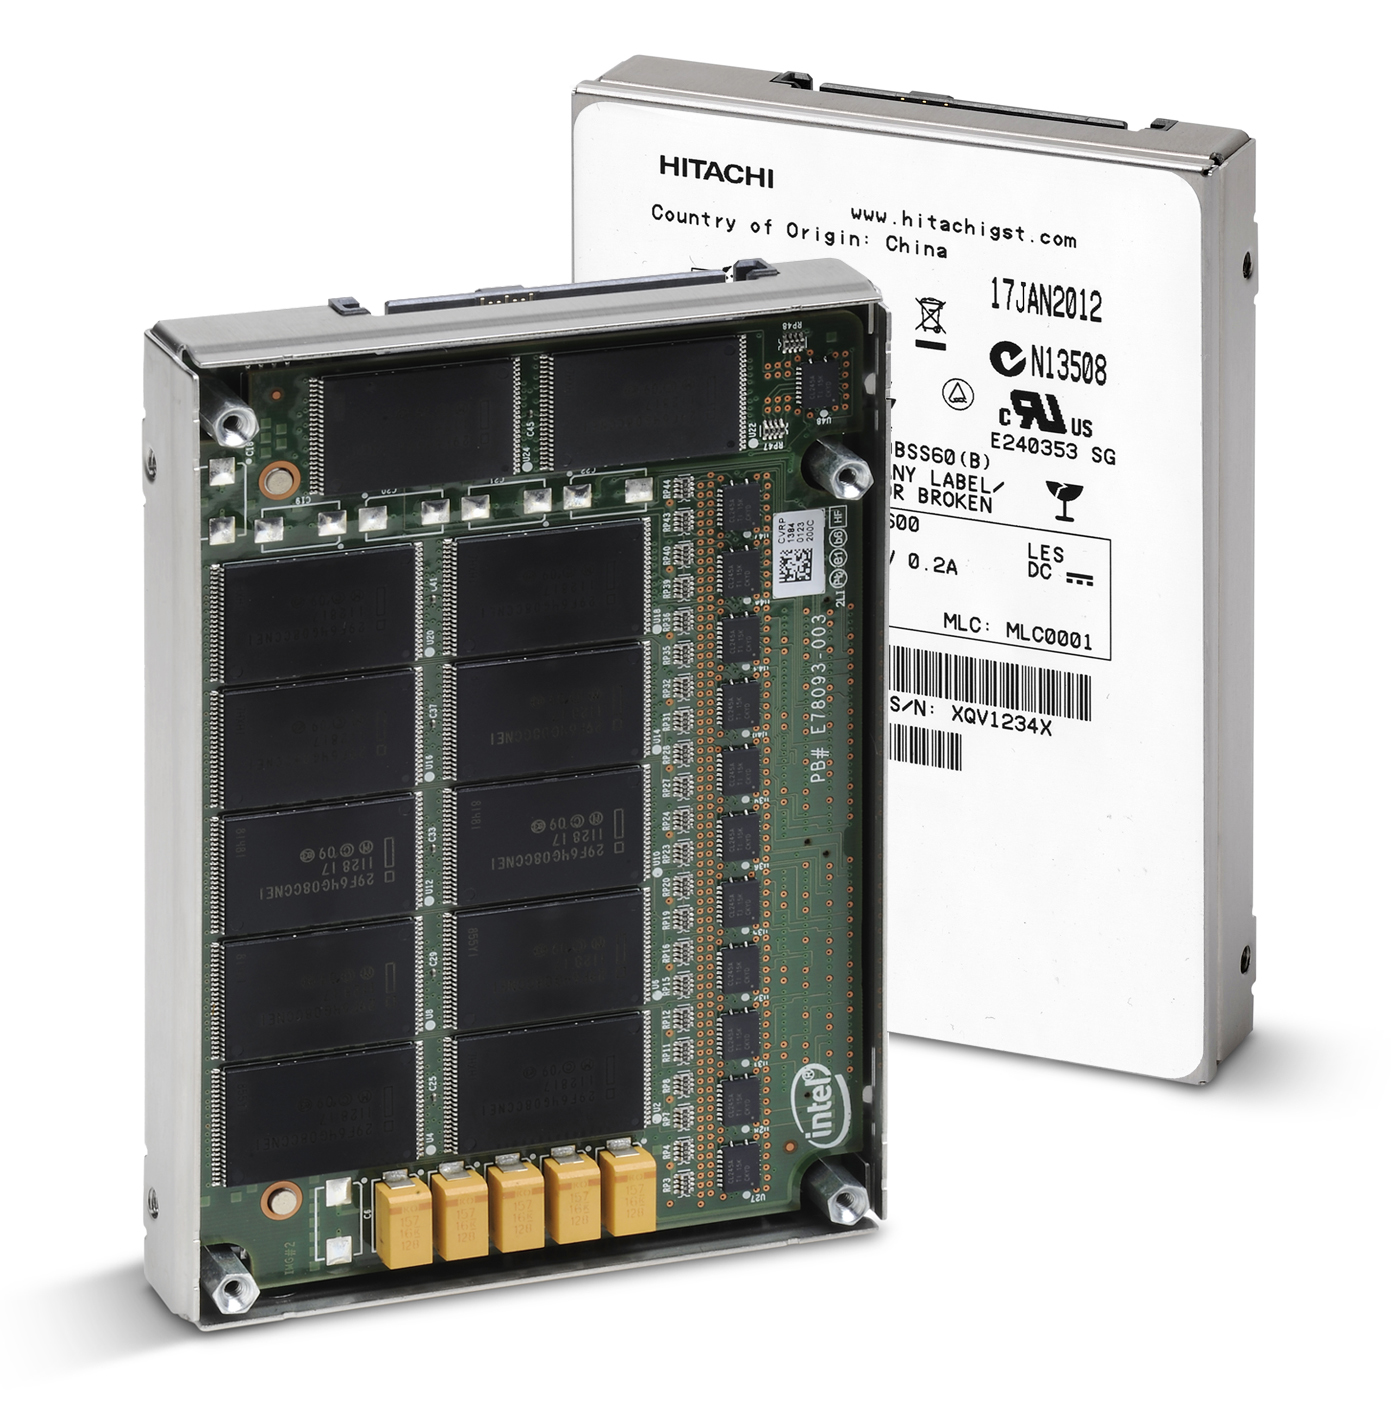 Hitachi's New Ultrastar™ enterprise-class solid state drive (SSD) family